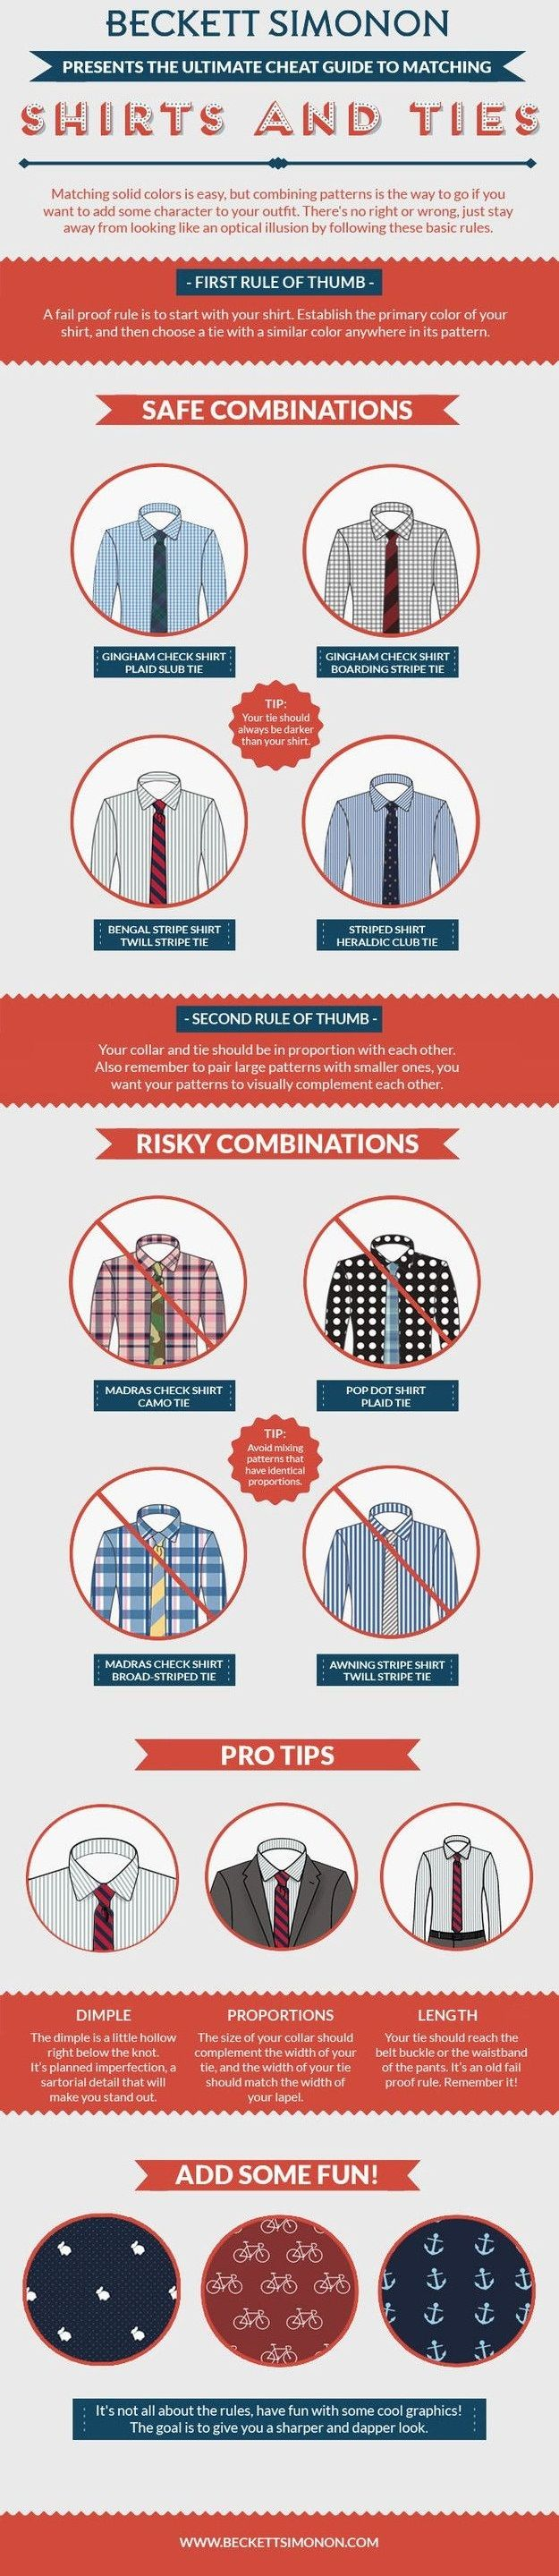 how to match shirt & tie patterns, perfect guide for shirt & tie combinations